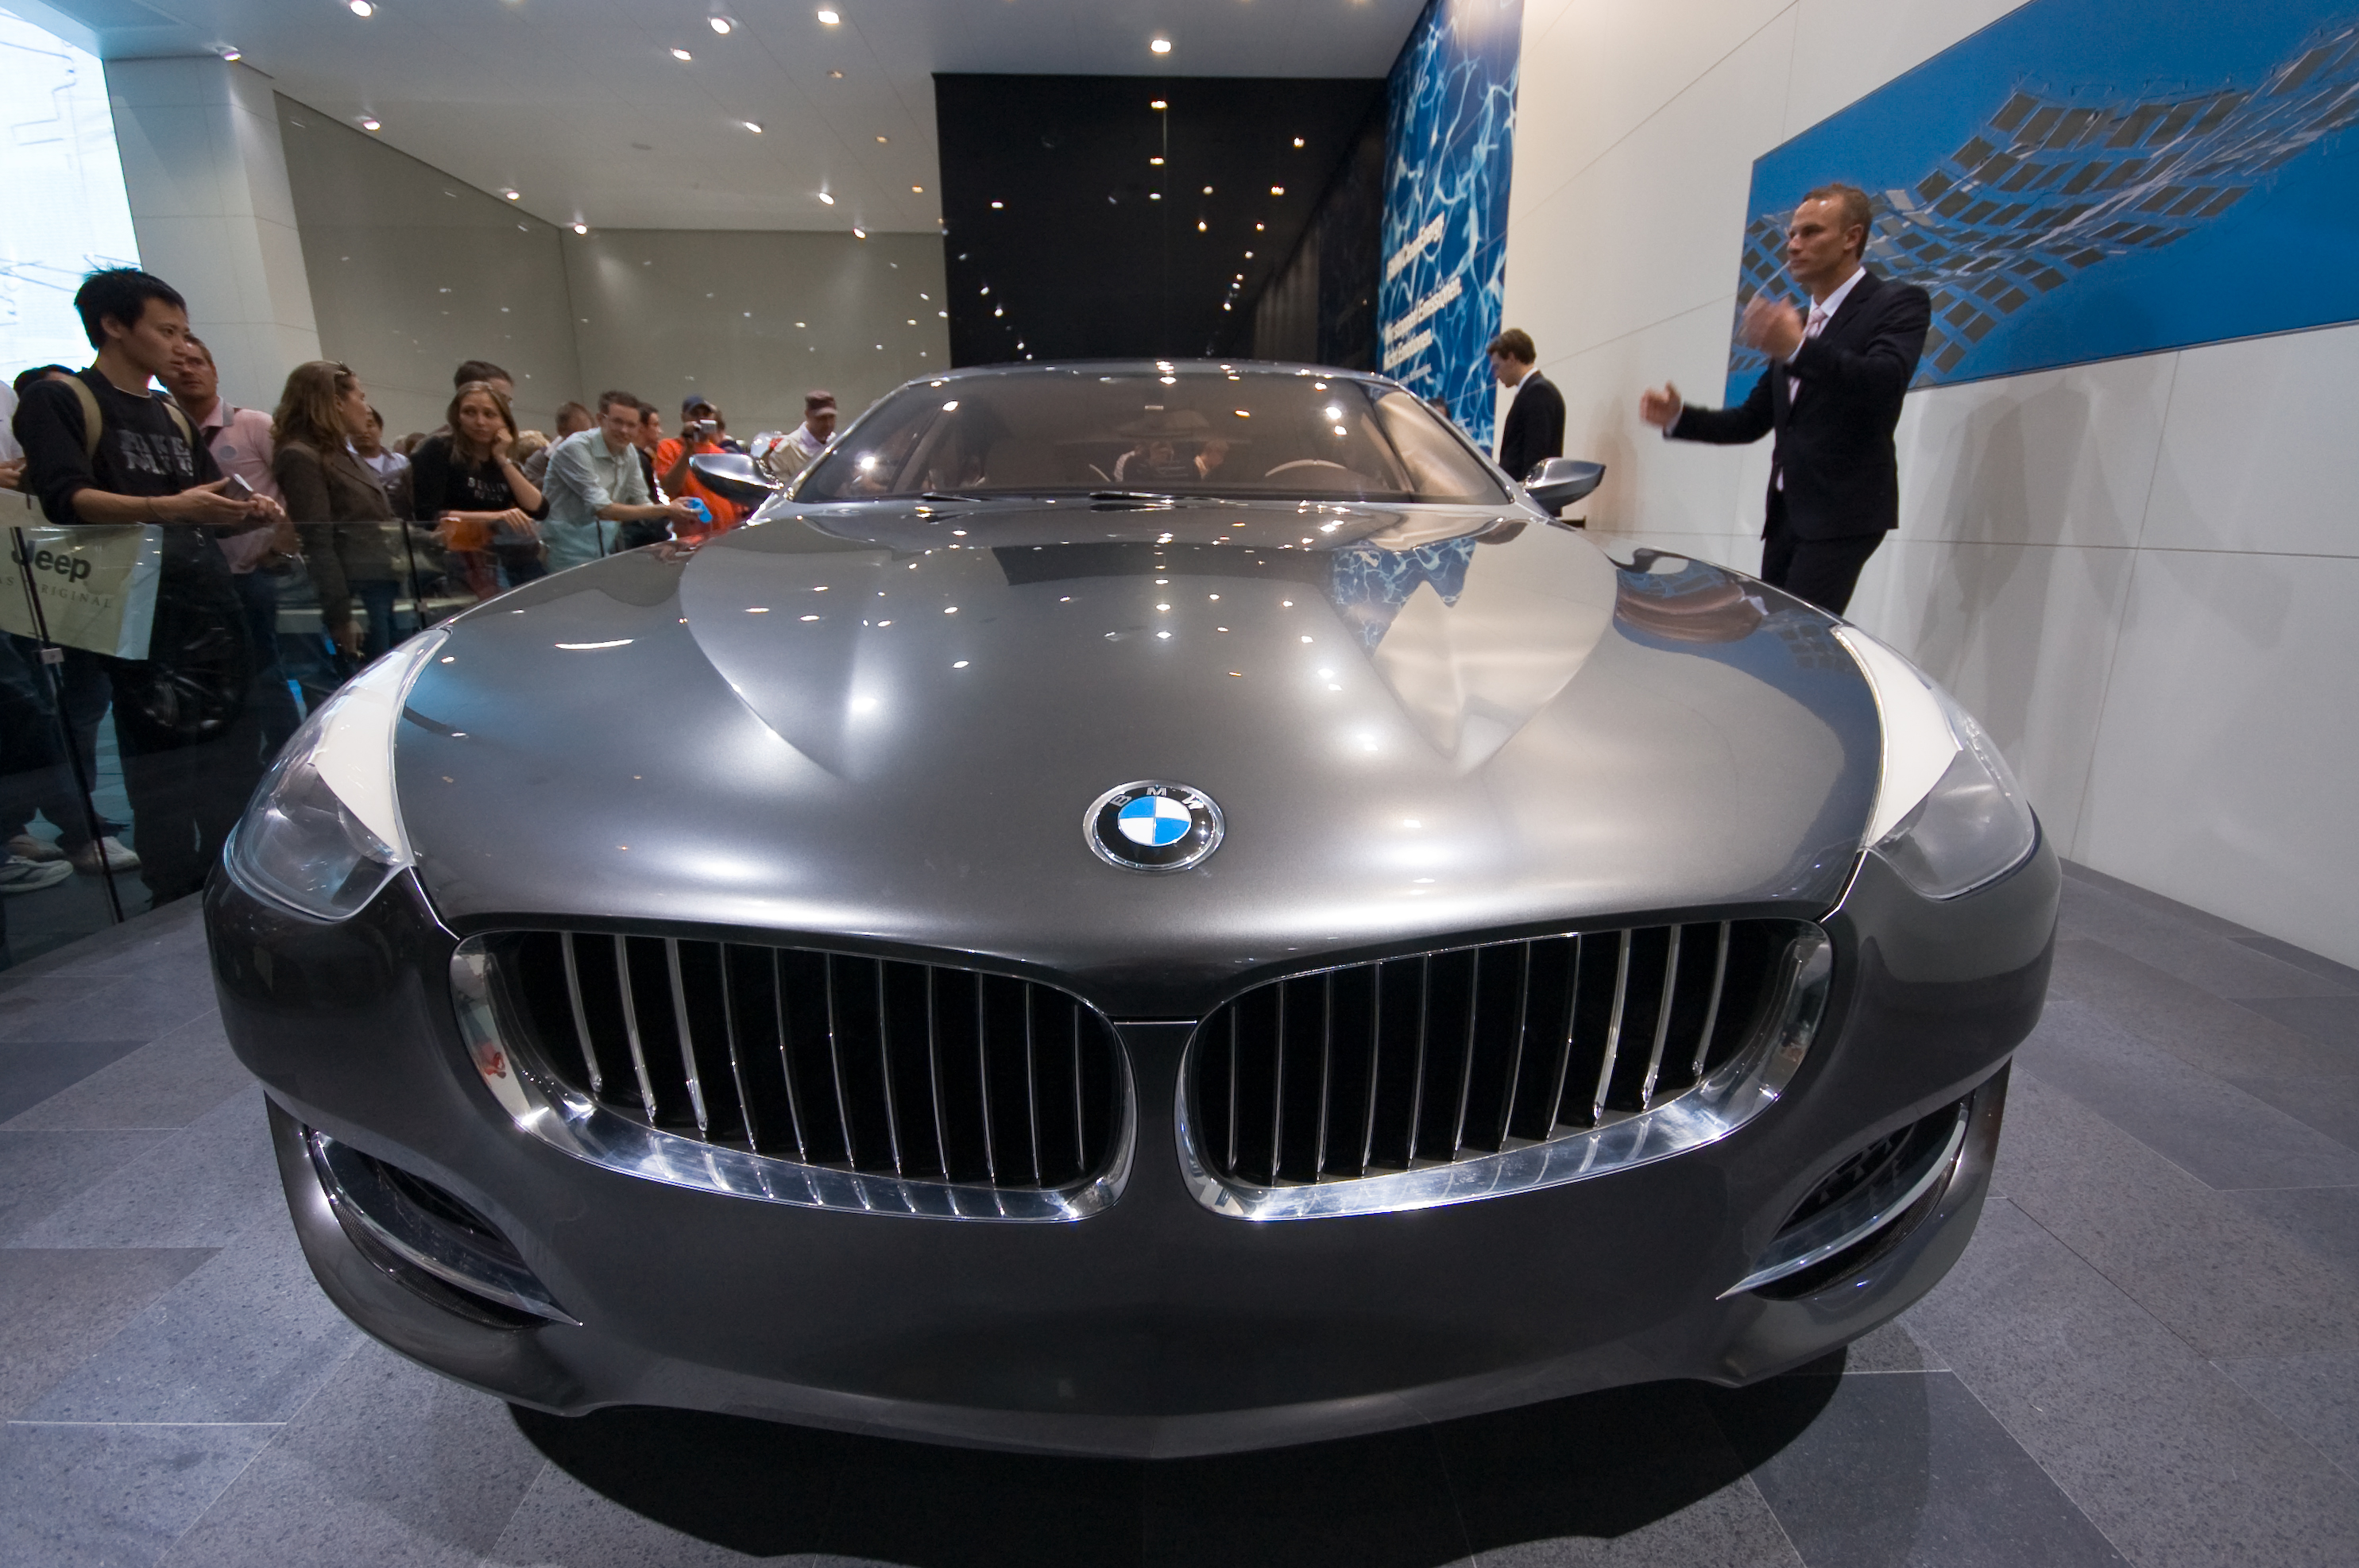 File:BMW Concept CS front.jpg - Wikimedia Commons